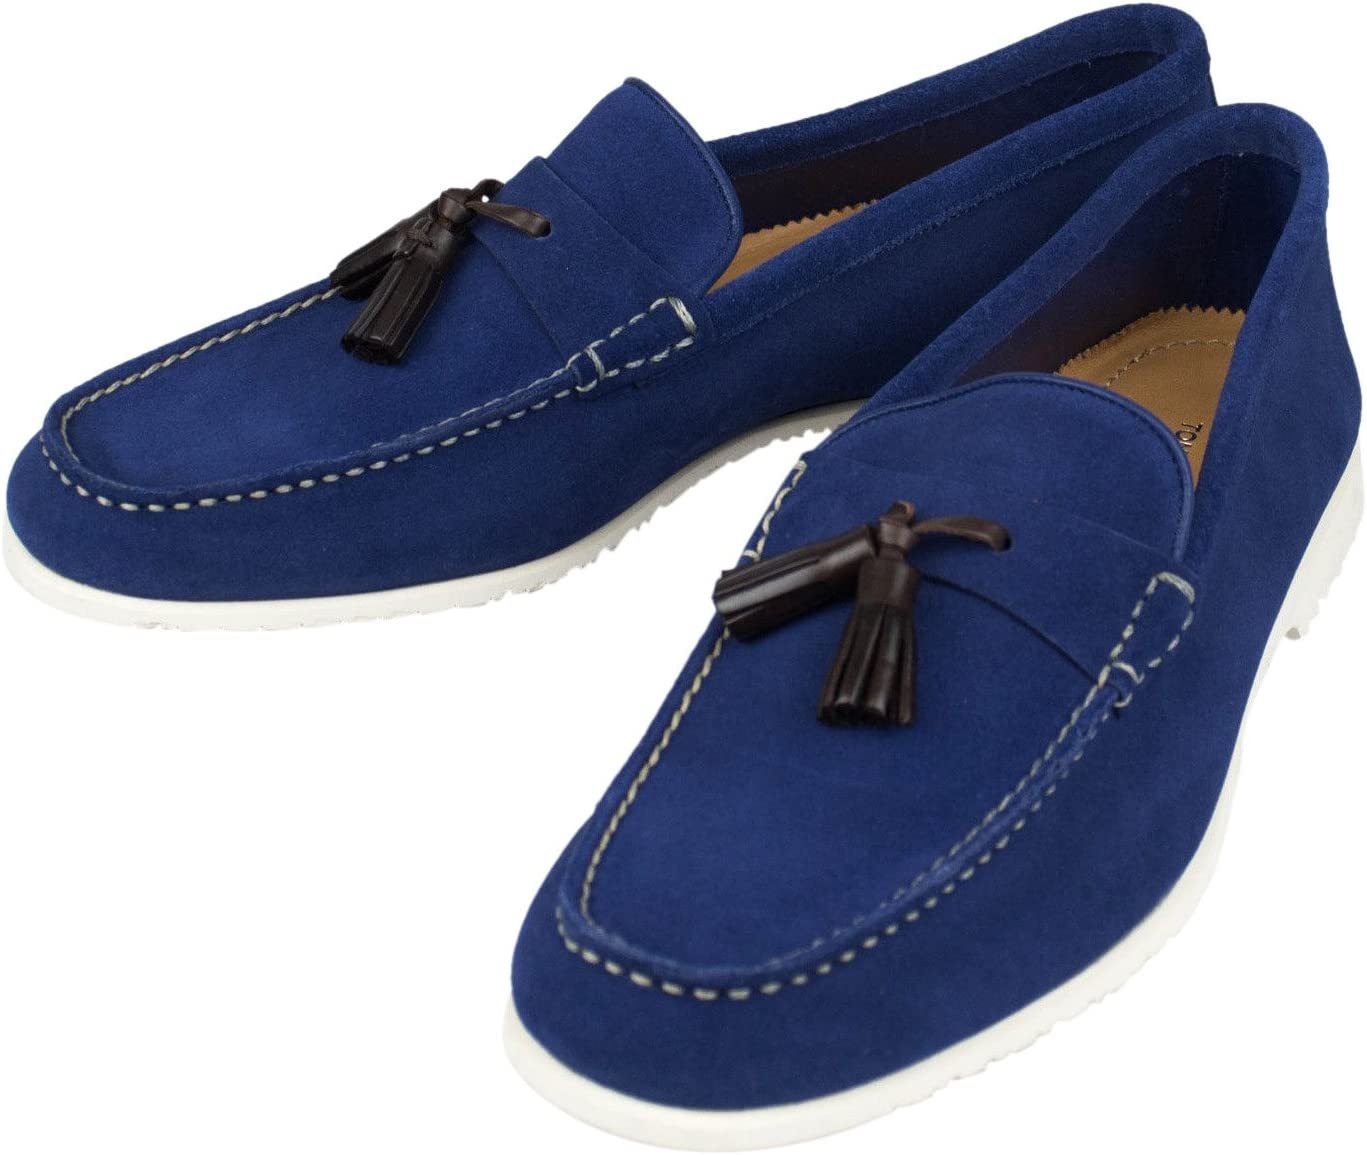 TOM FORD Blue Suede Leather Tassel